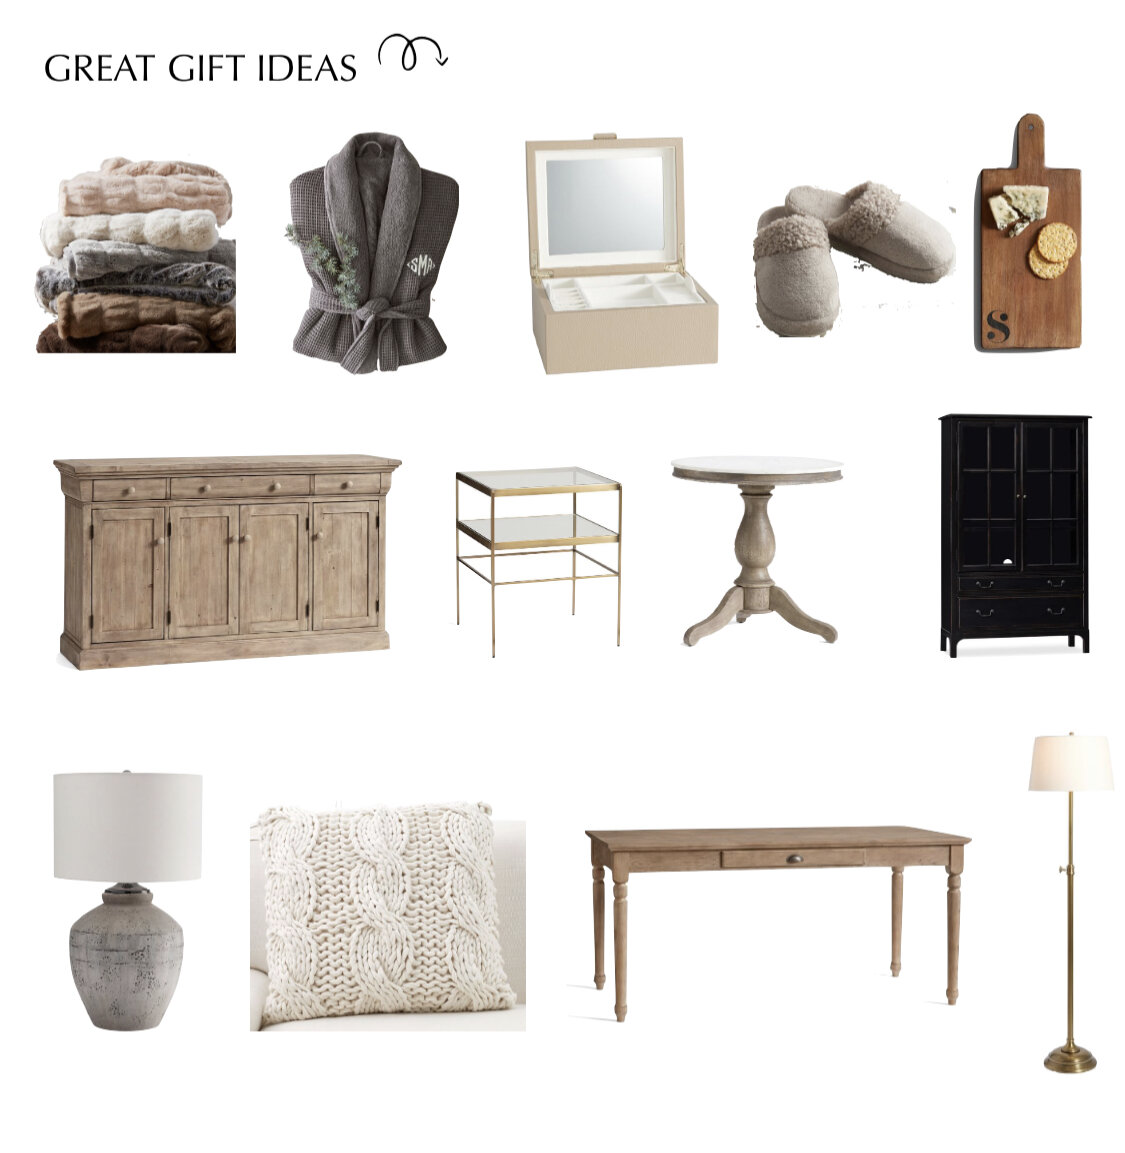 UP TO 25% OFF AT POTTERY BARN